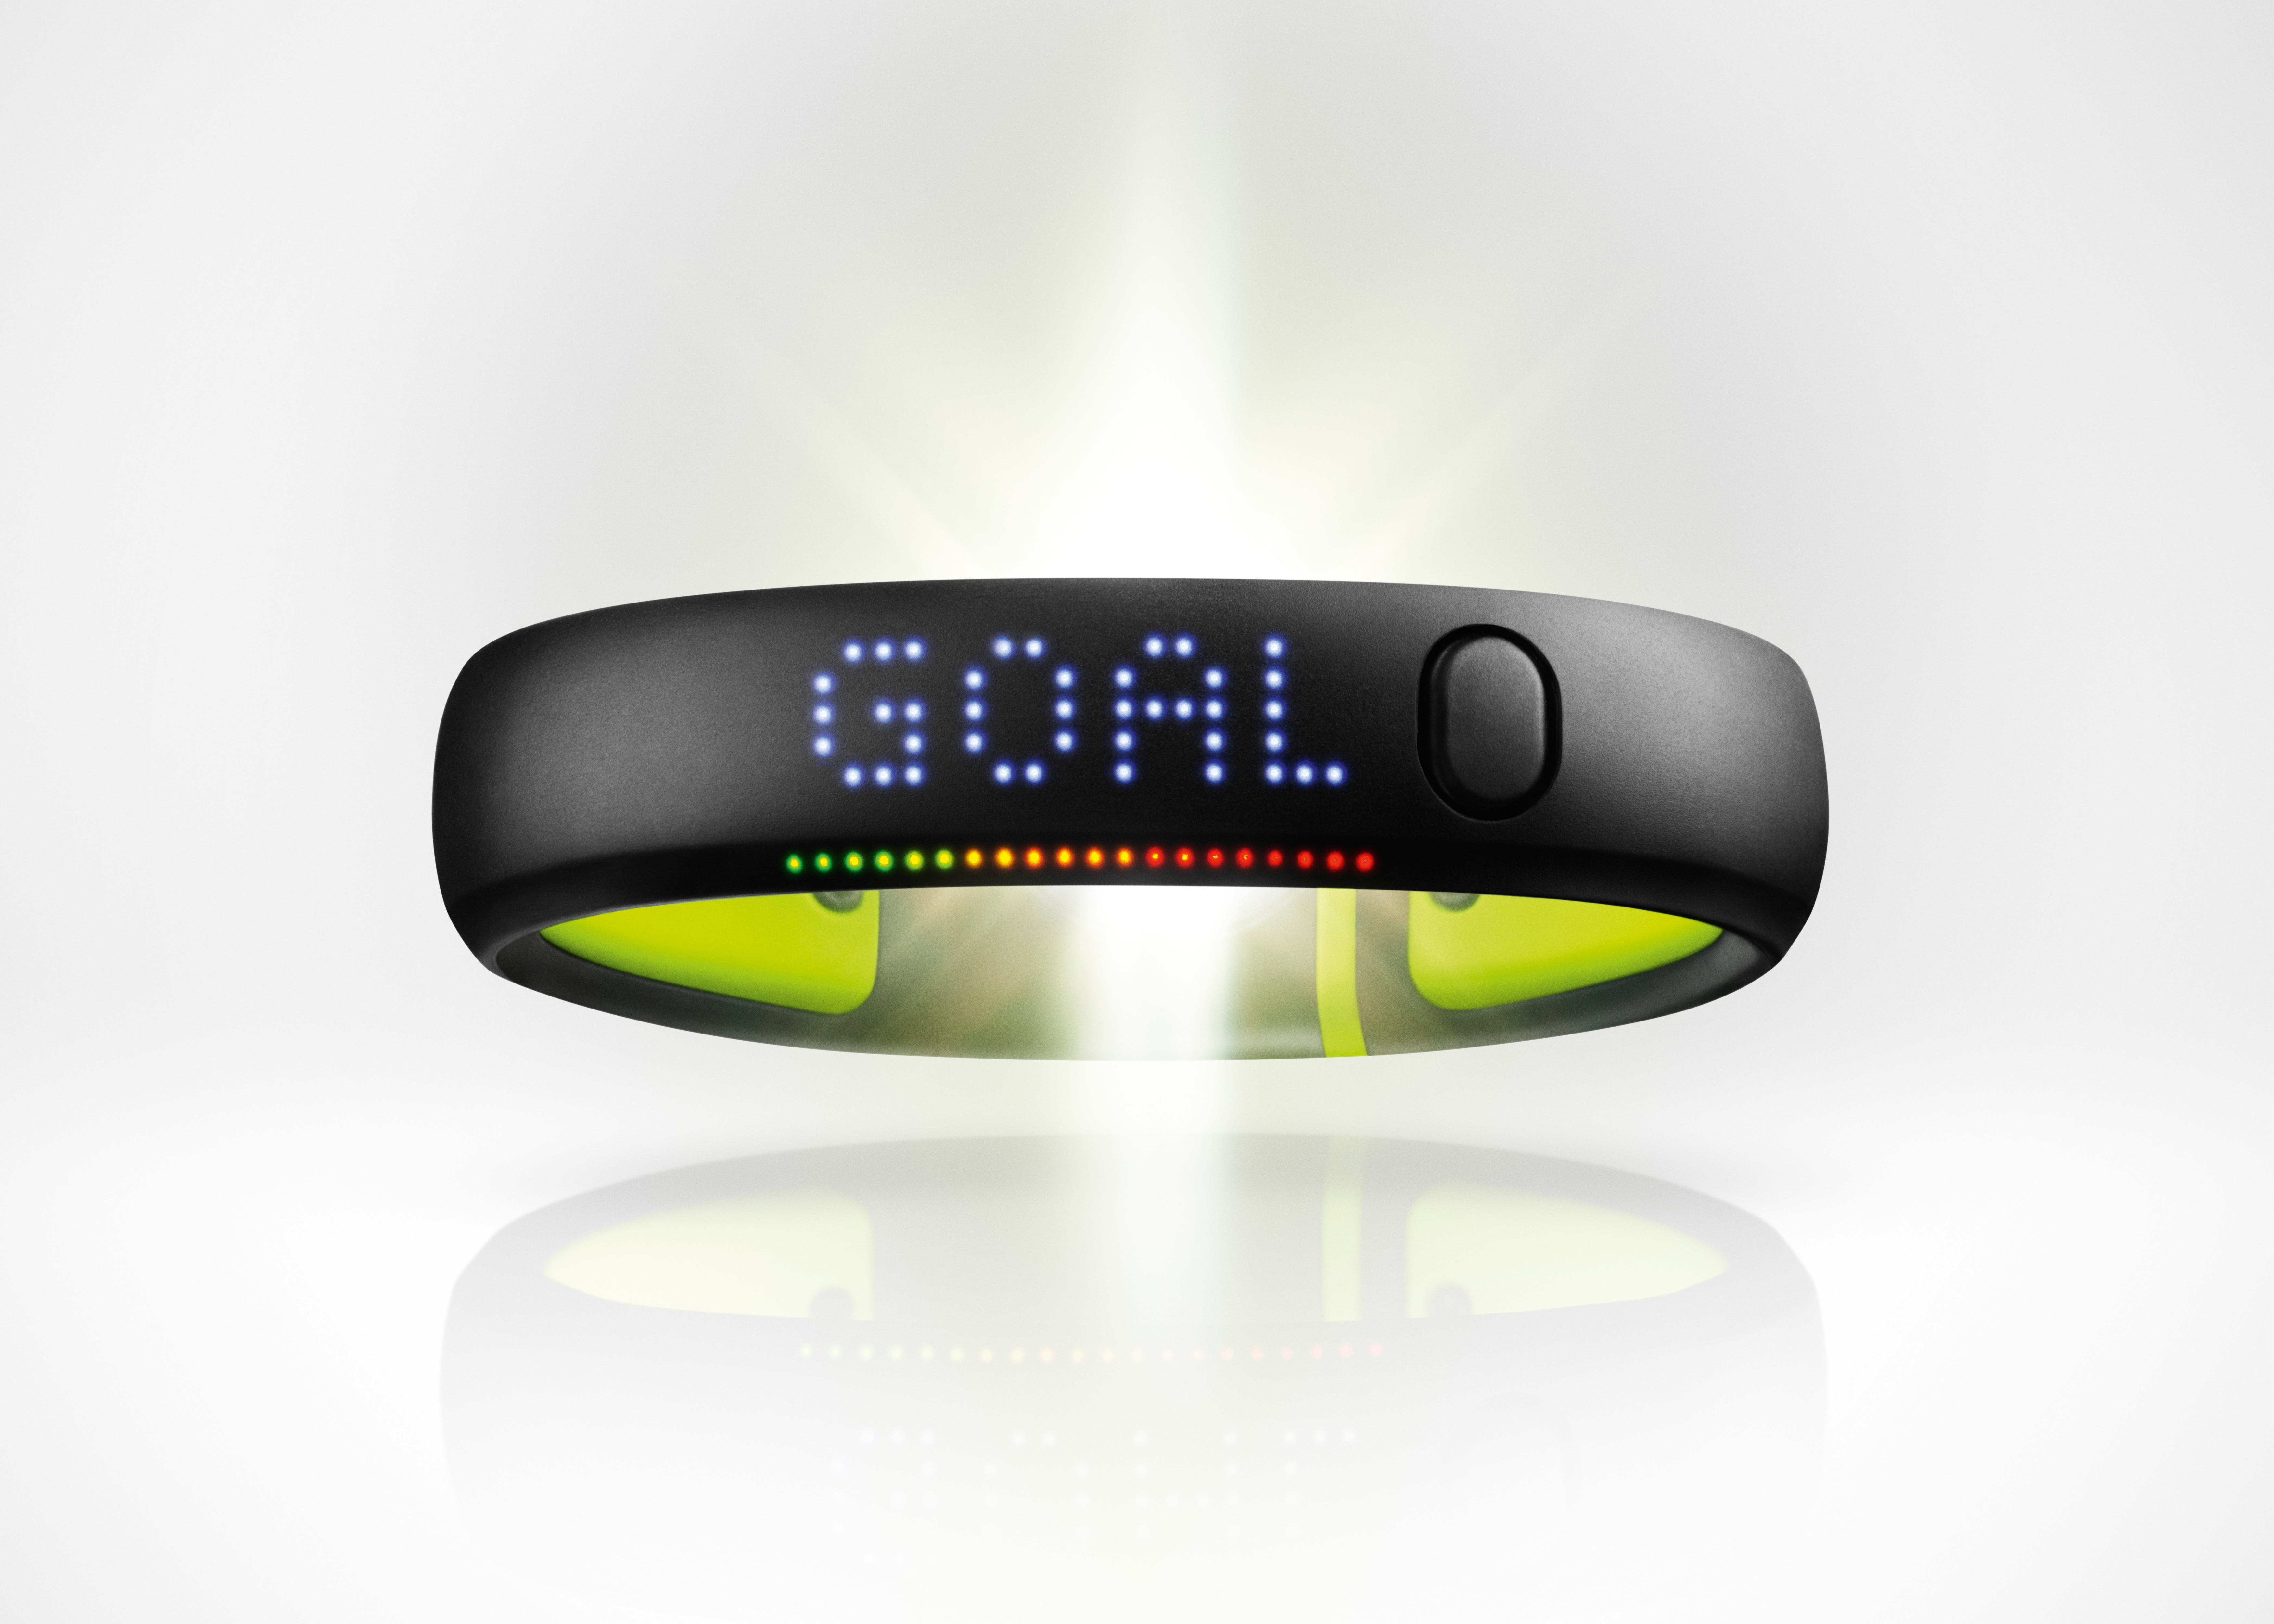 Stay fit: Jawbone Up24 and Nike+ FuelBand SE review | The ...